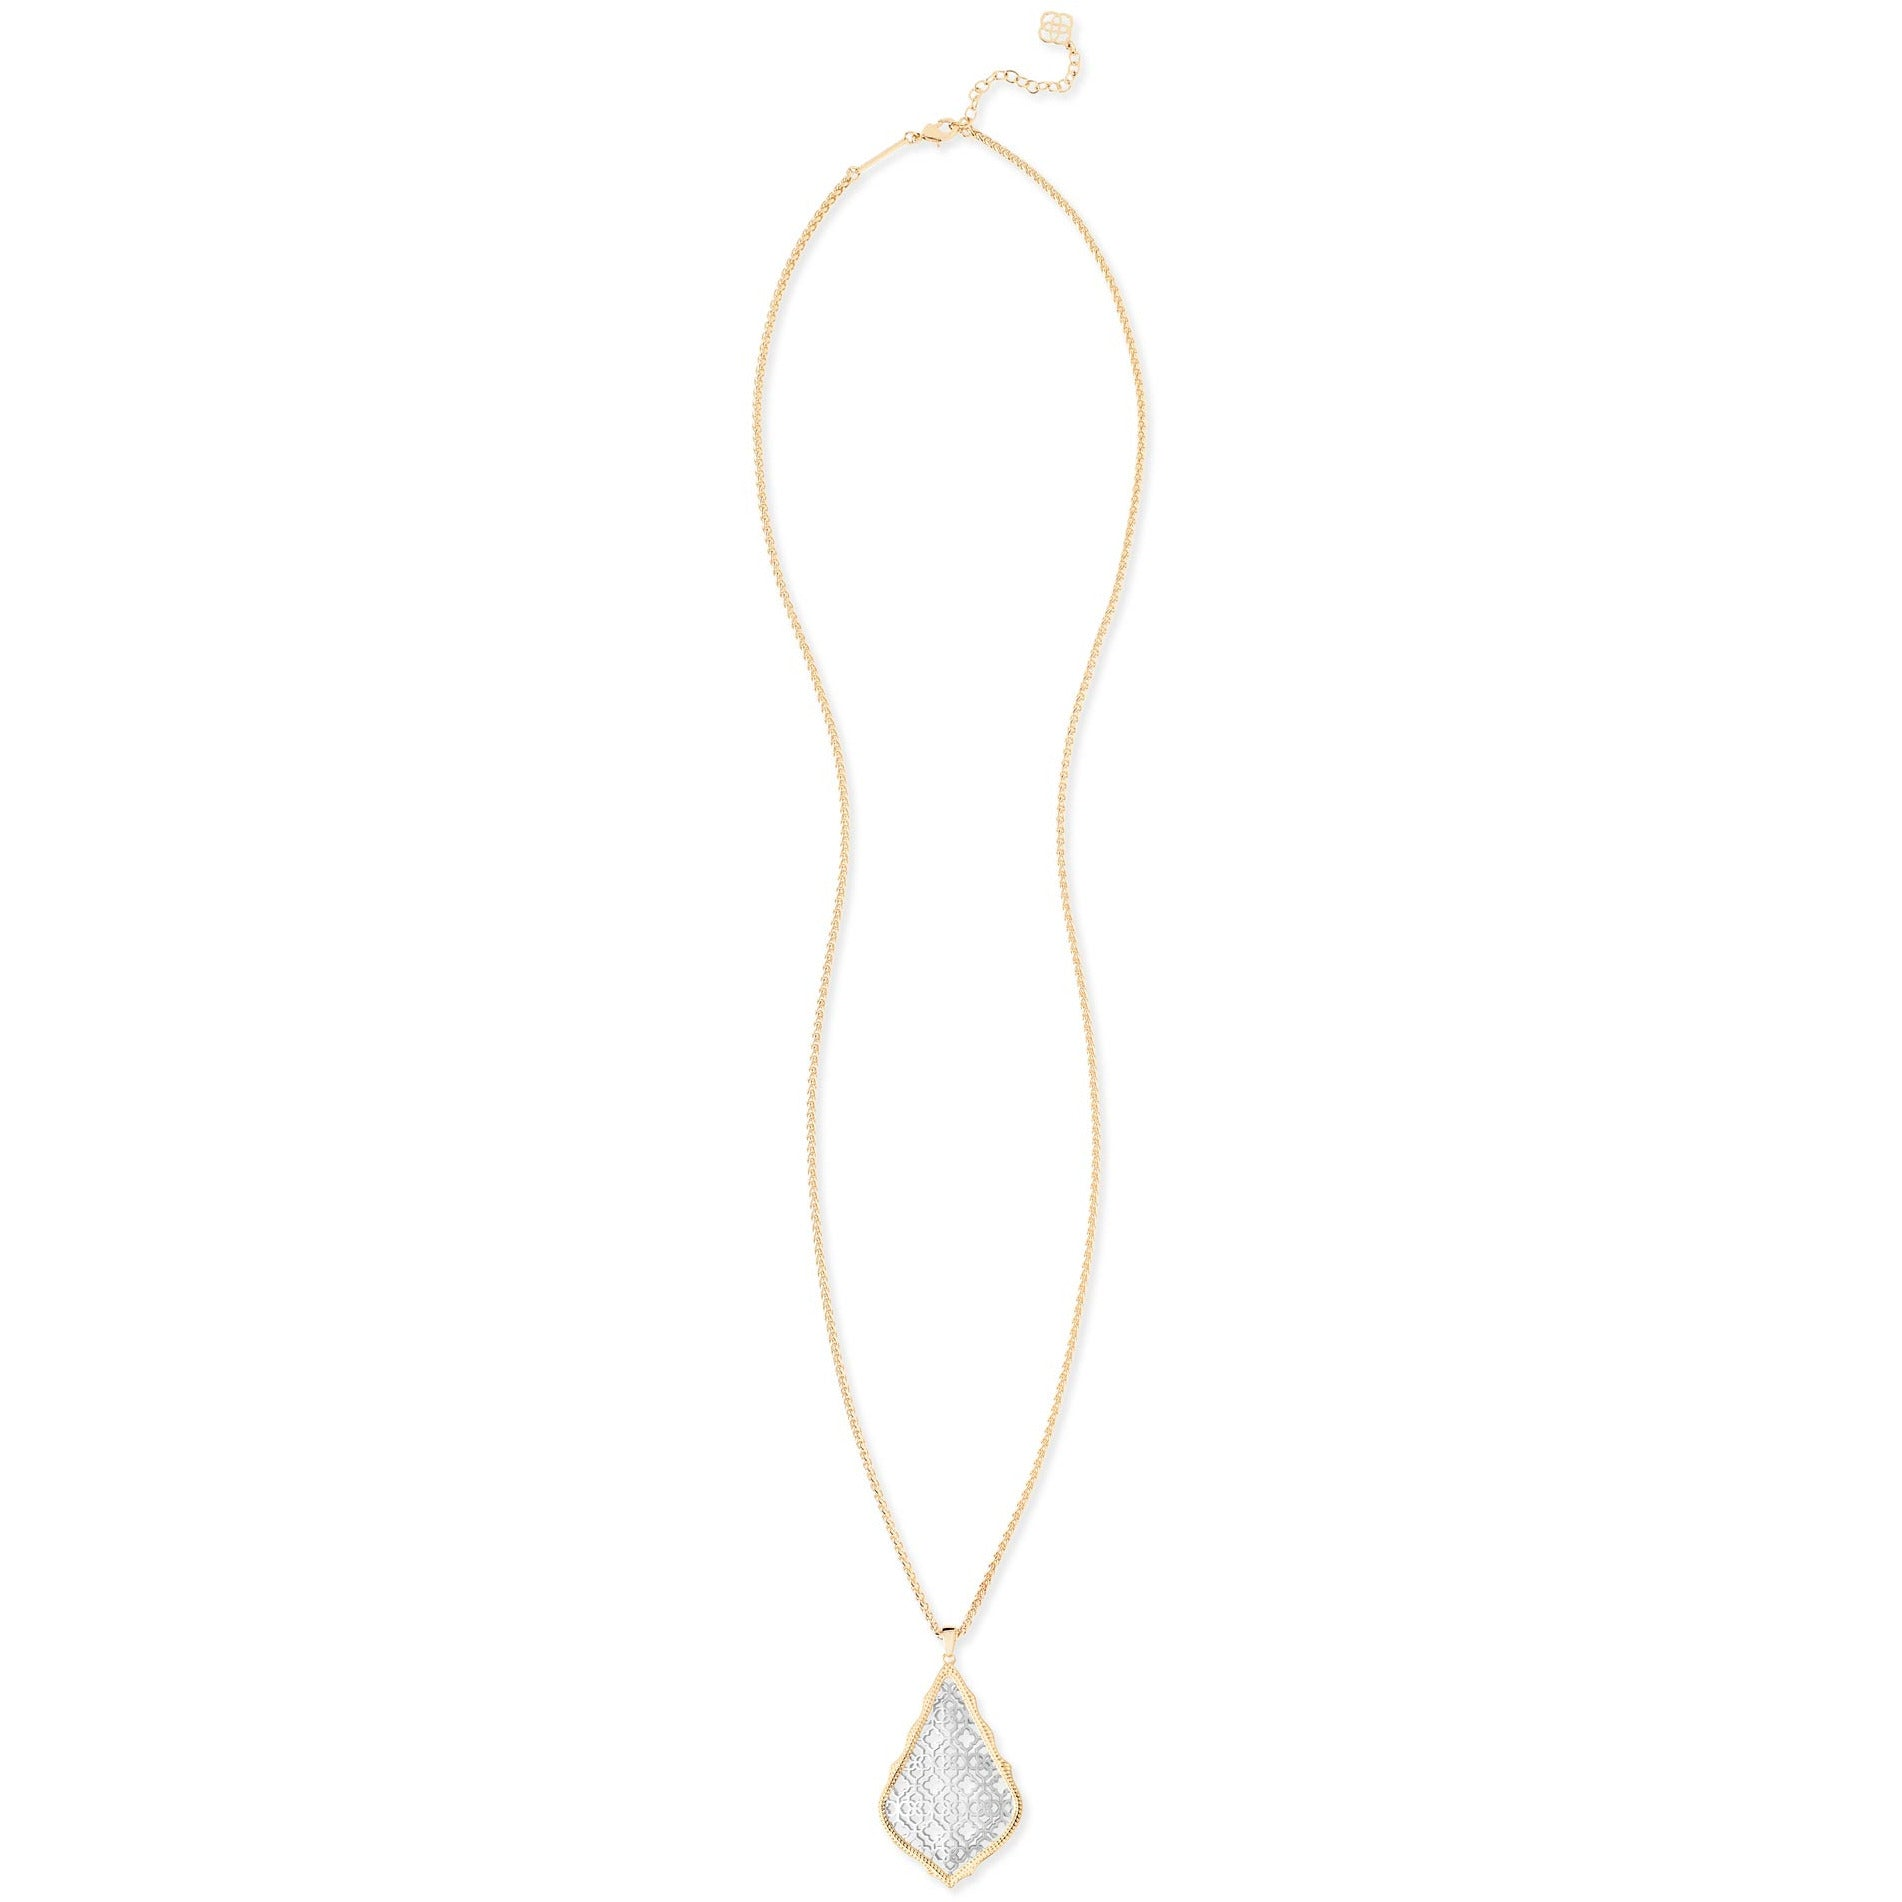 Kendra Scott -  Aiden Gold Long Pendant Necklace In Silver Filigree Mix FULL VIEW